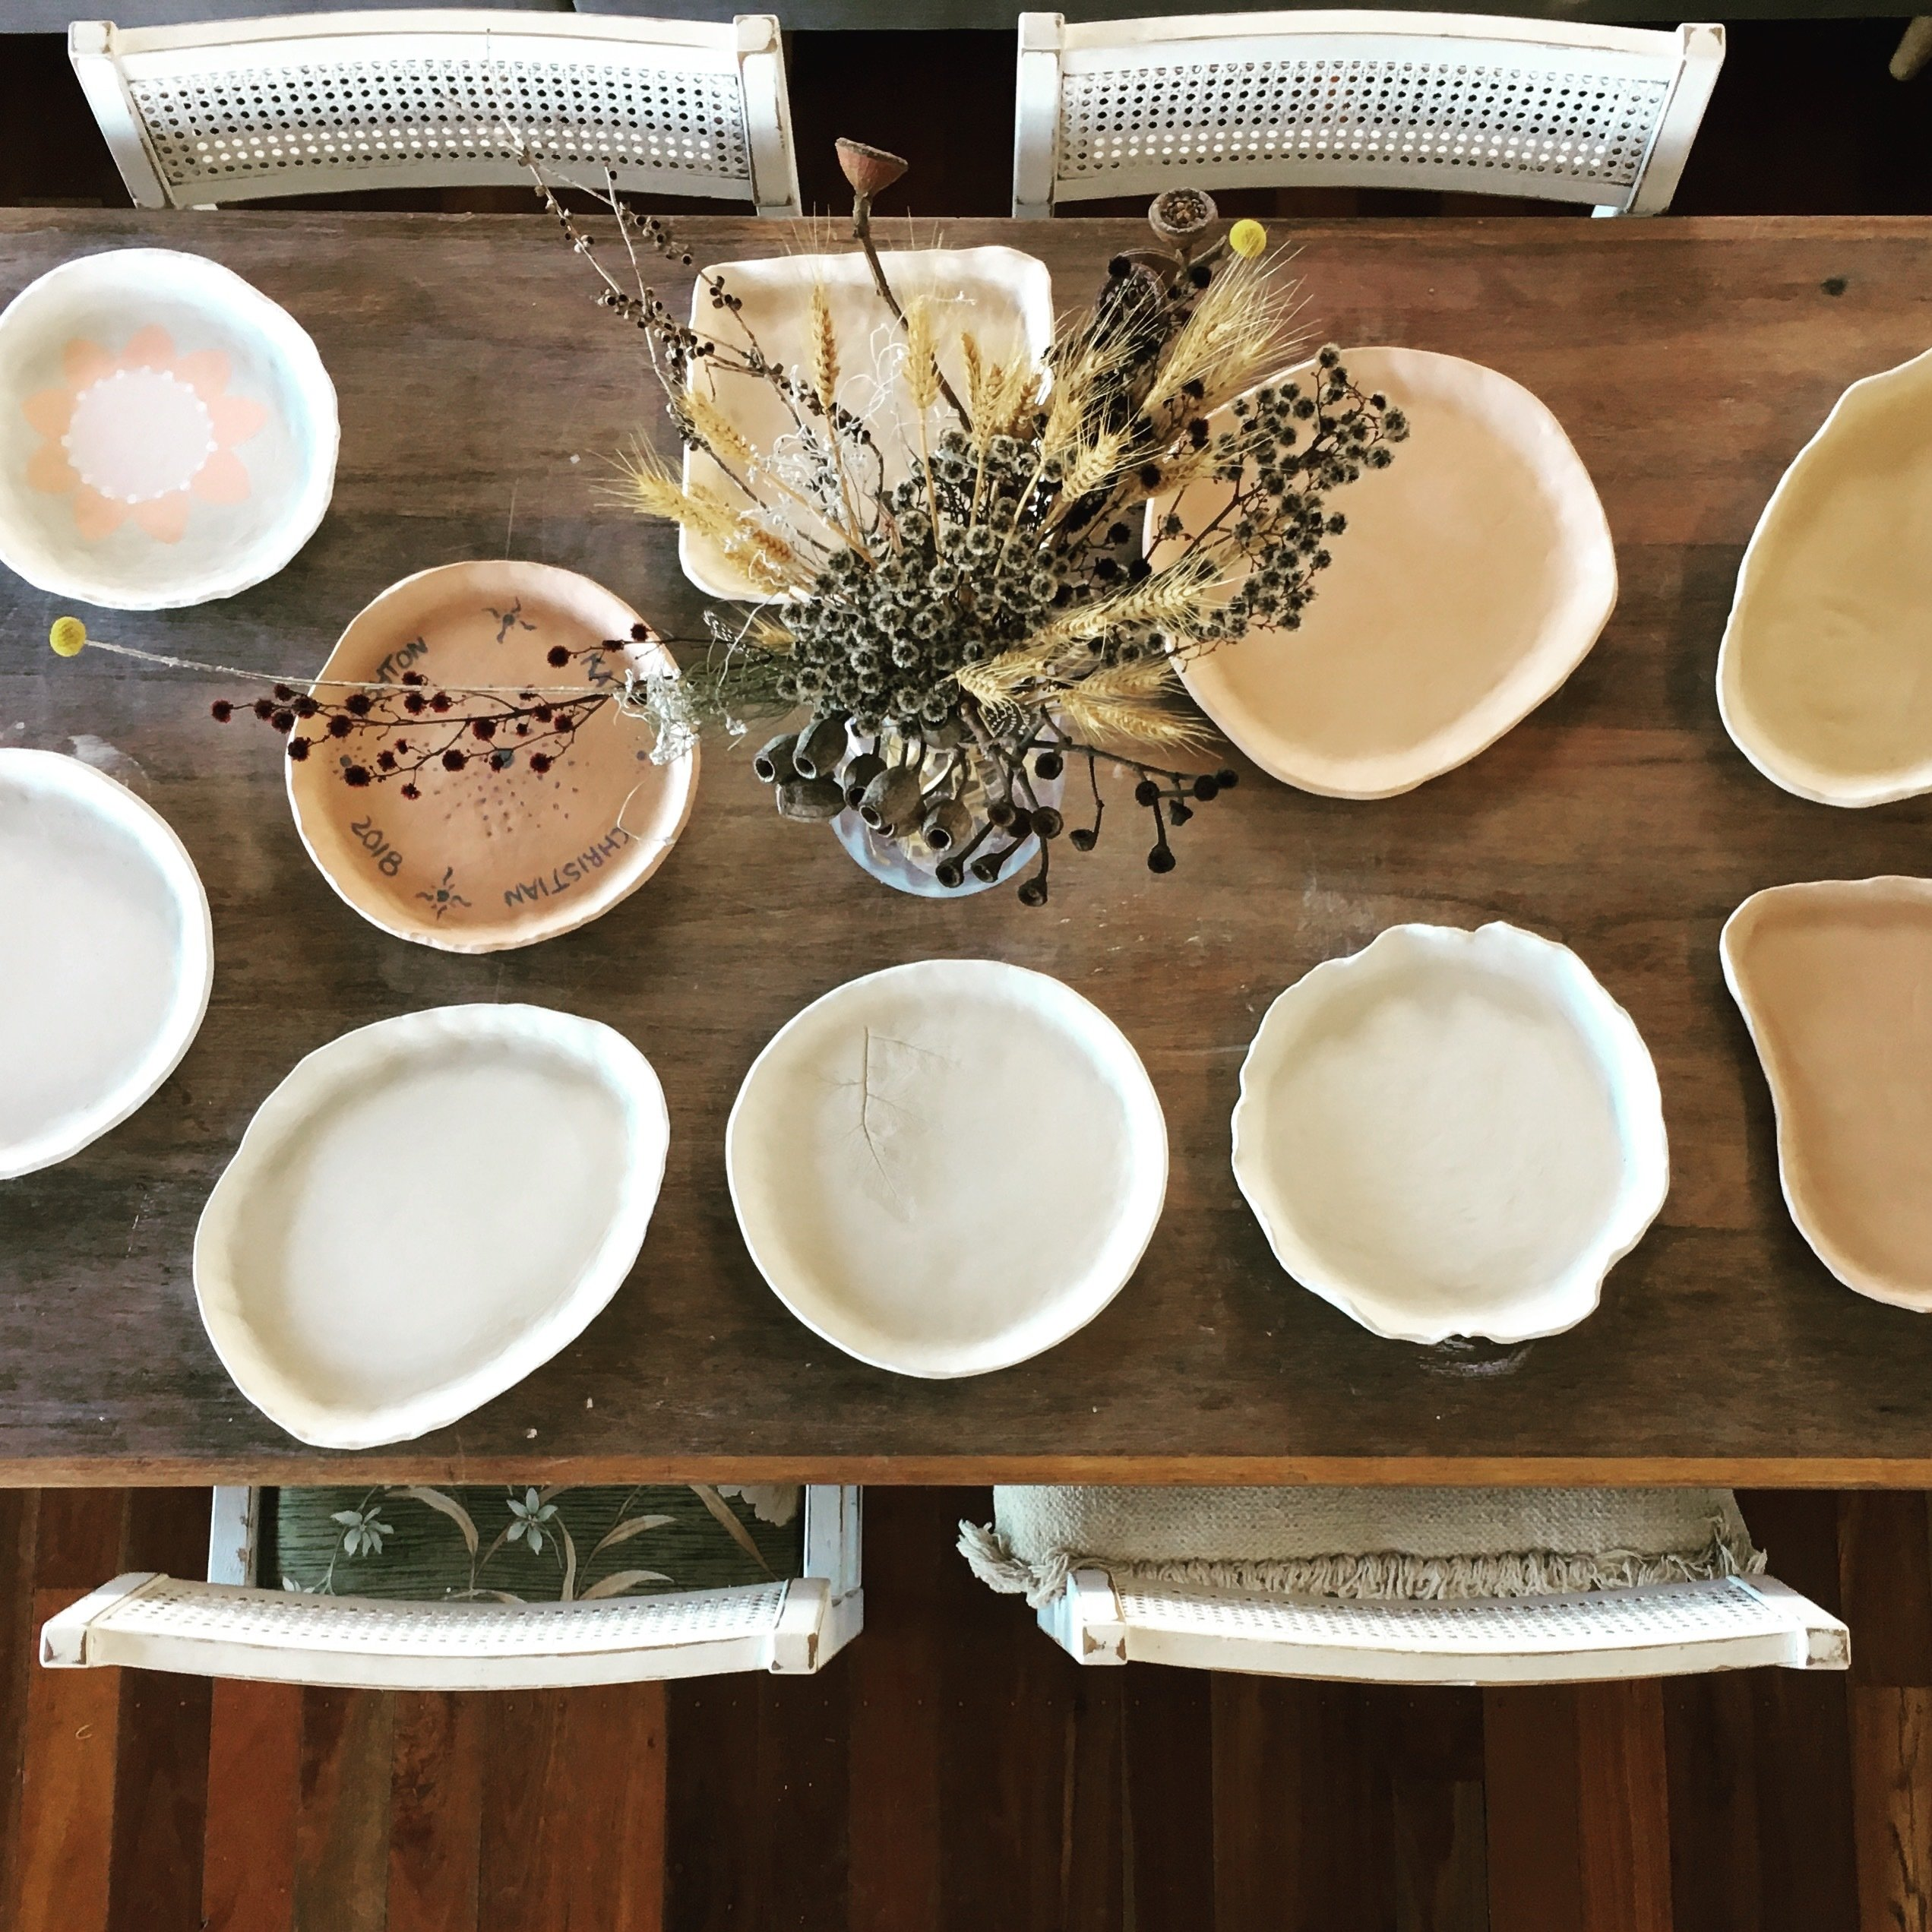 POTTERY WORKSHOP - PRESSED SERVING PLATTERS, 10am-12pm, 15th Dec, 2018 - 6-12yrs WS011